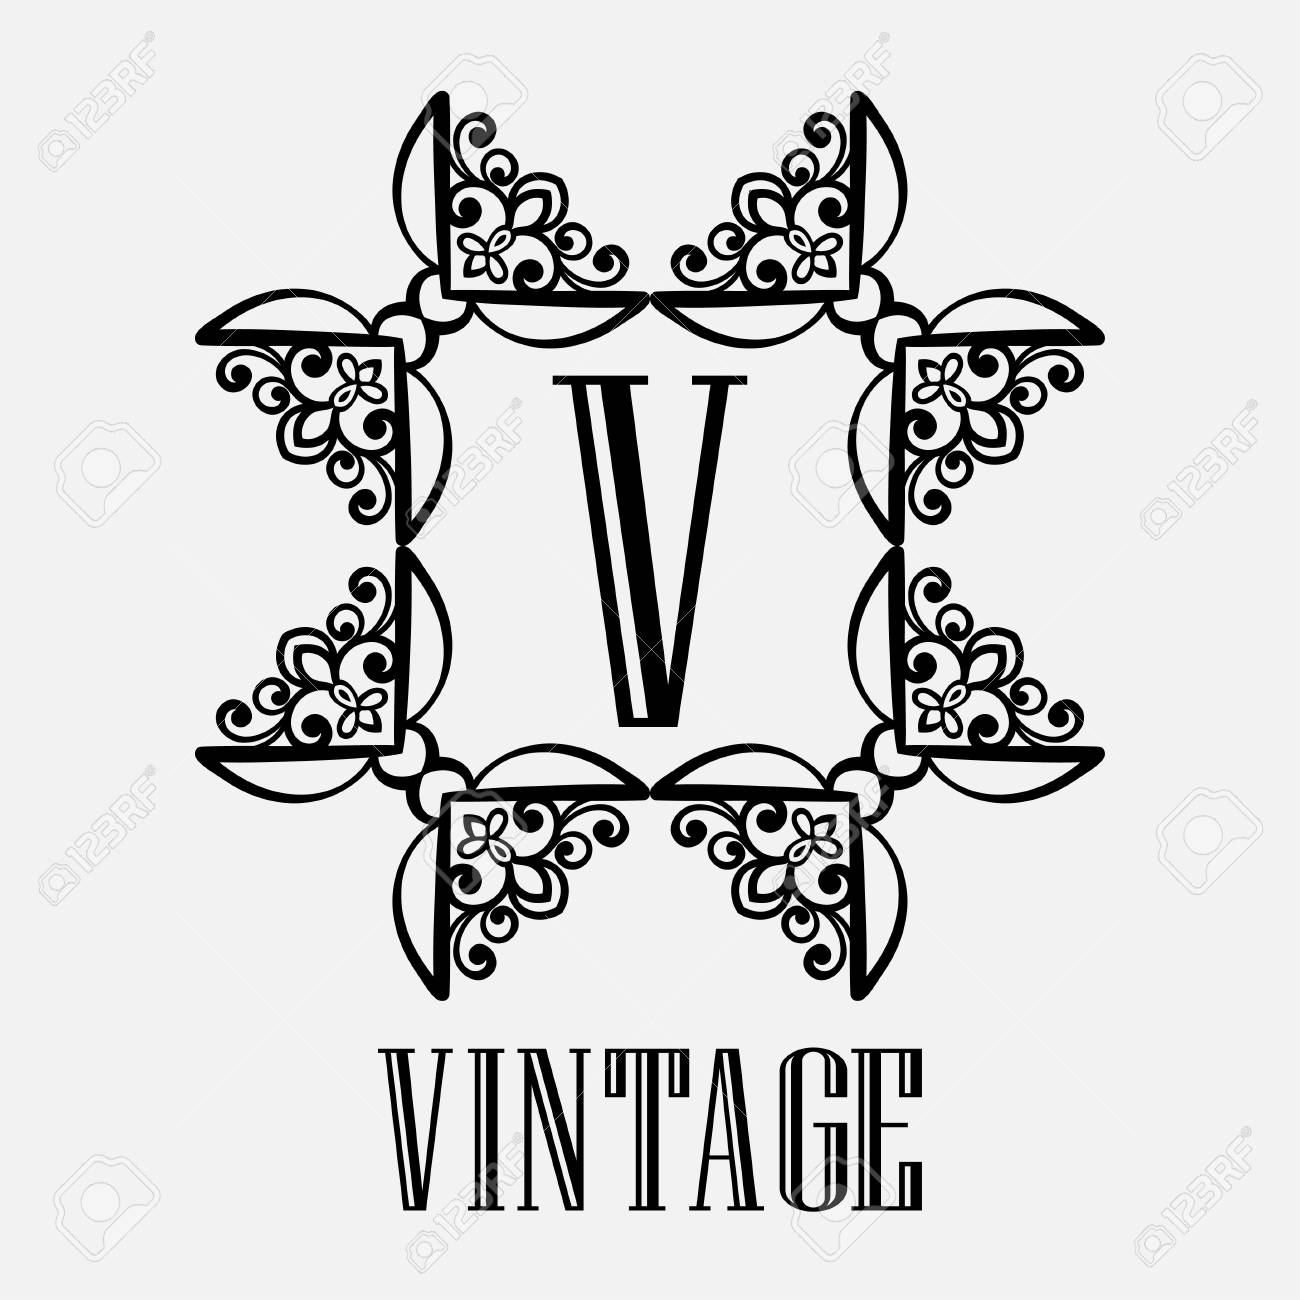 Vintage Ornamental Monogram With Square And Star Shaped Frame Royalty Free Cliparts Vectors And Stock Illustration Image 97514220